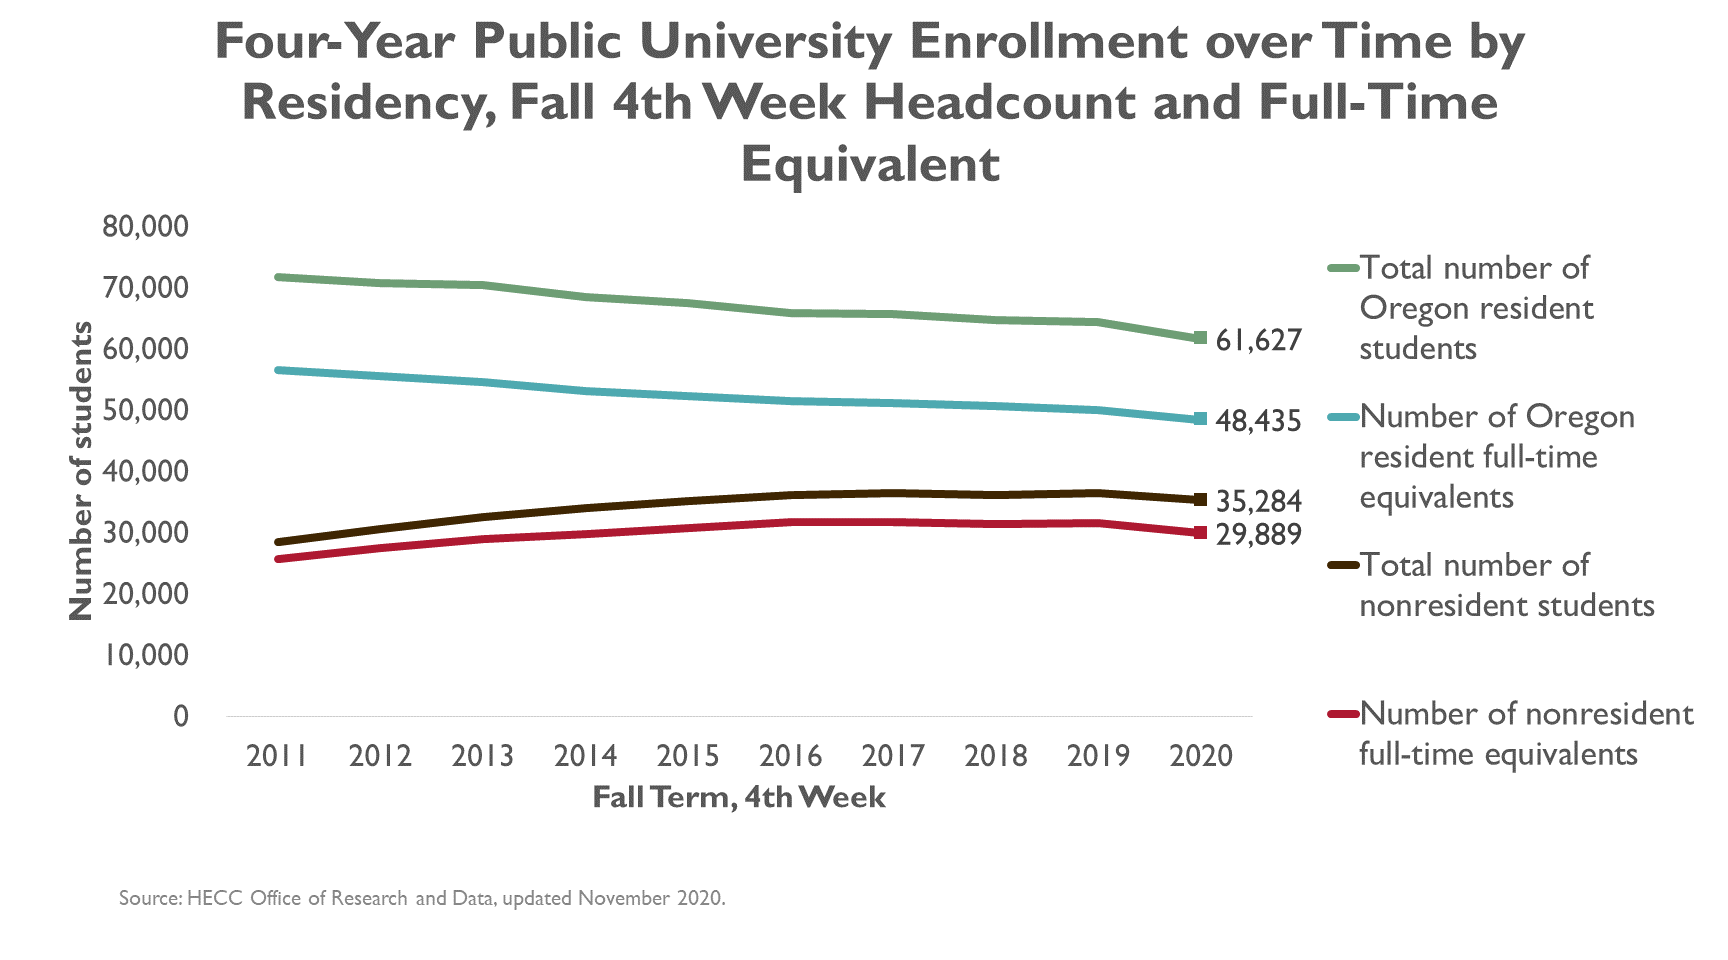 Graphic, line graph, Four-year public university enrollment over time by residency, total headcount, and FTE